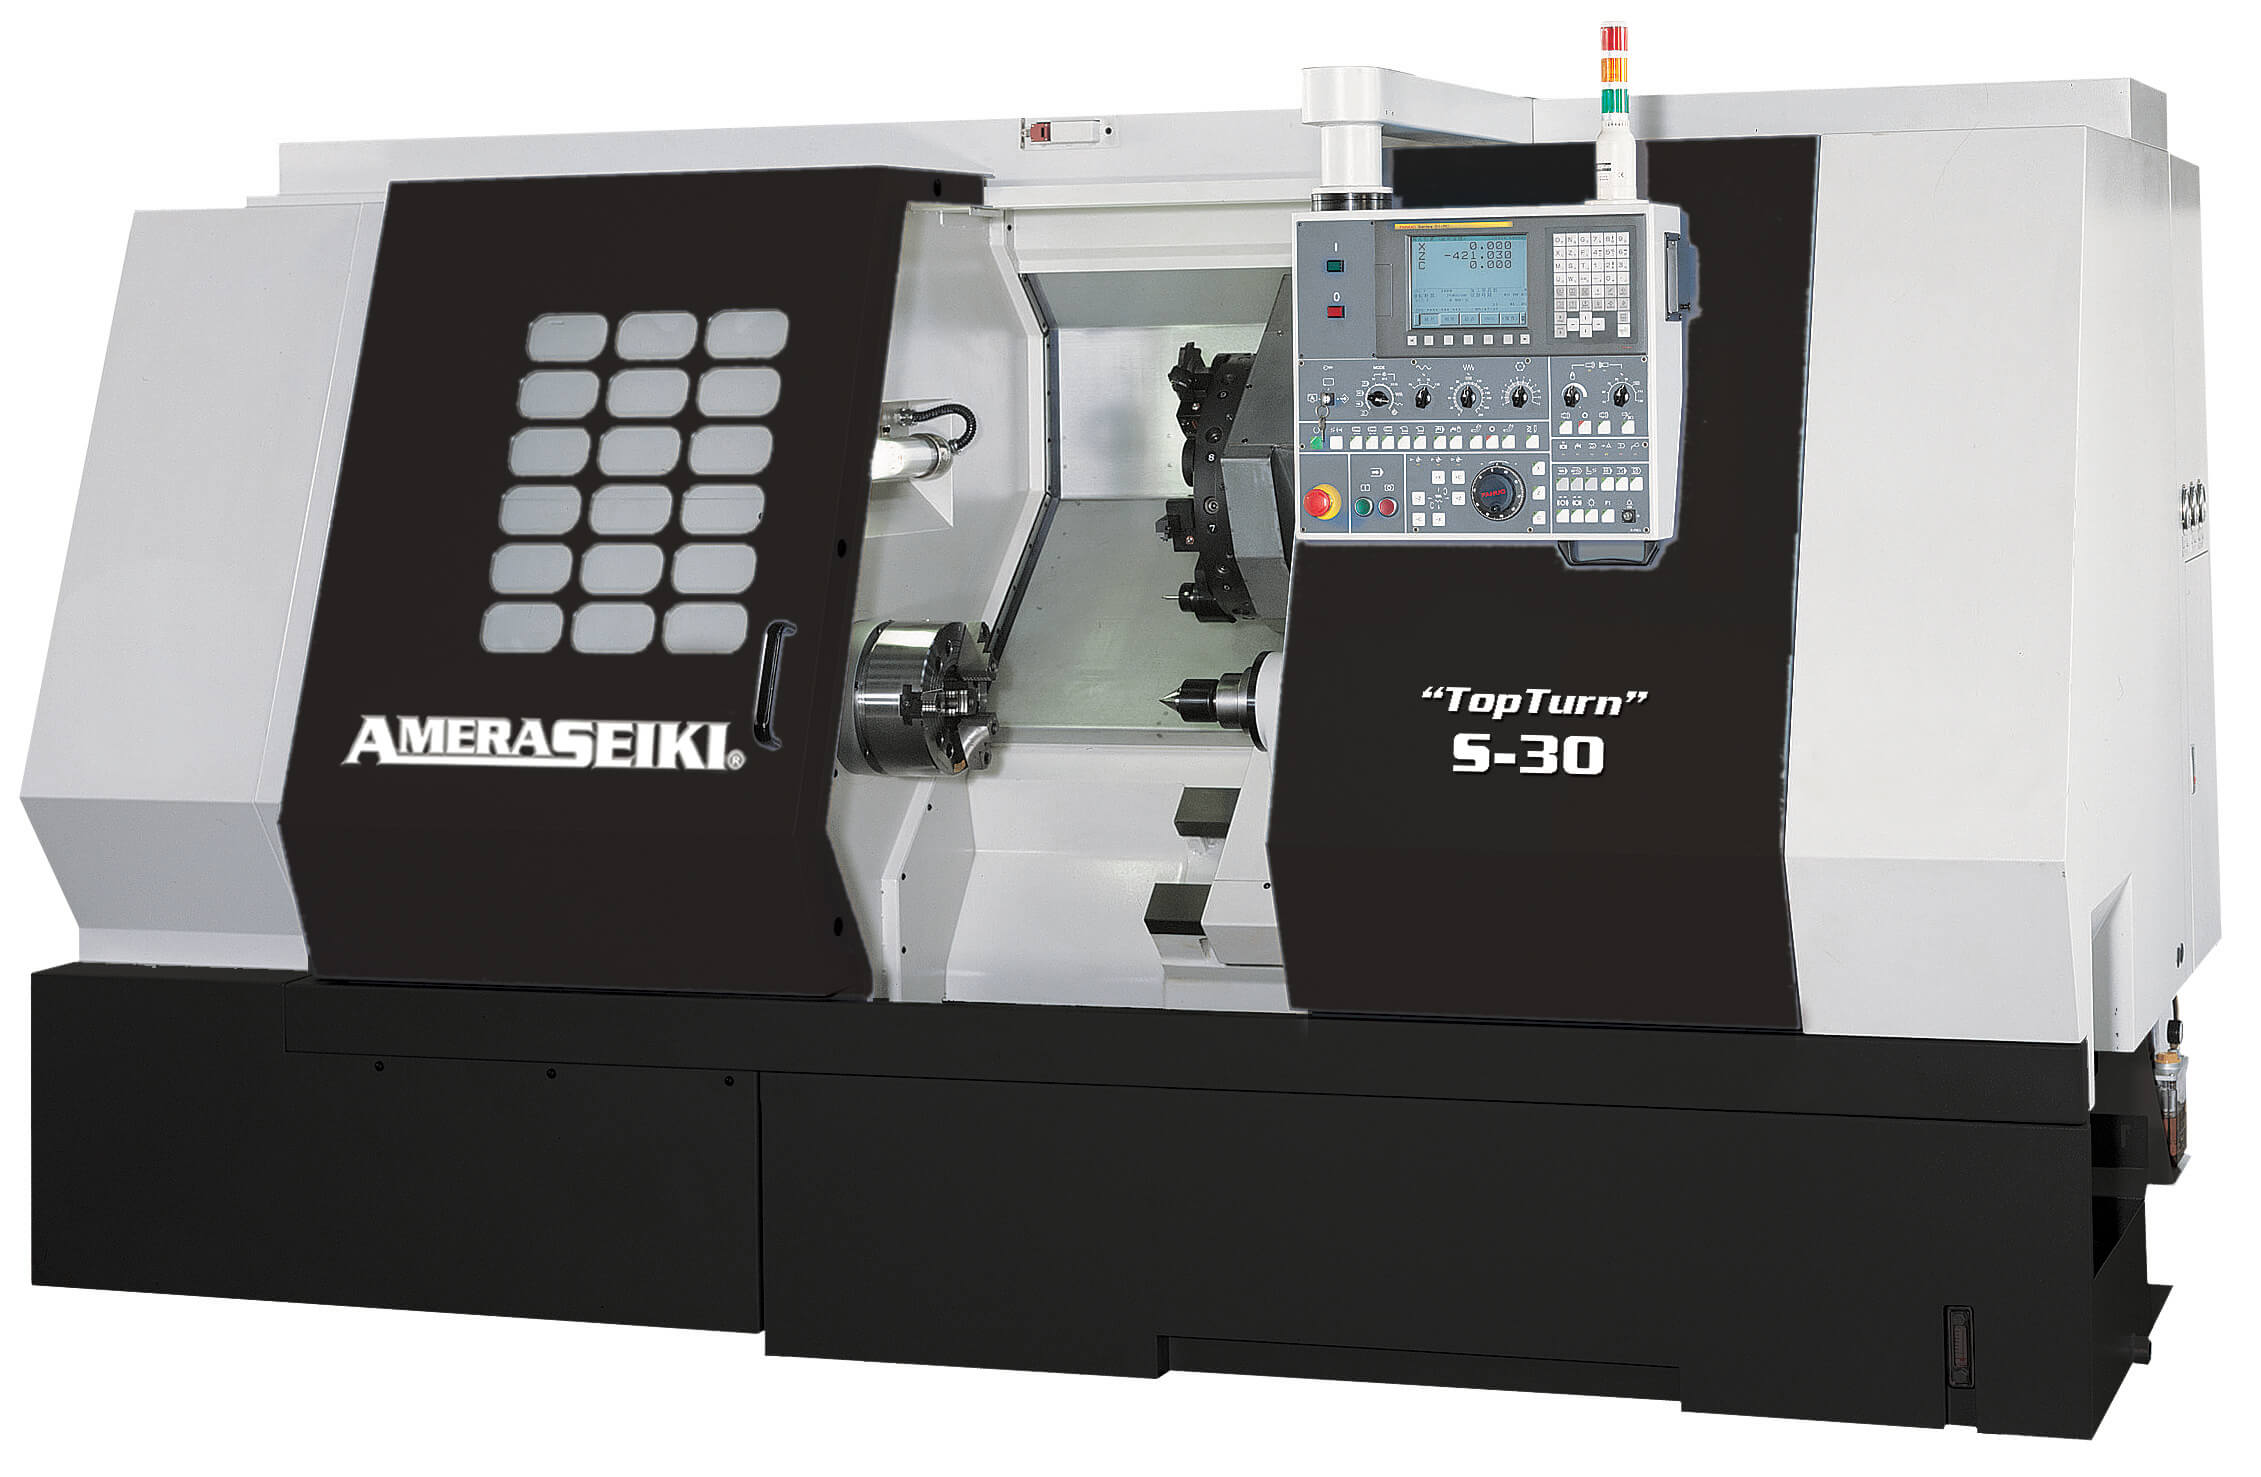 Amera-Seiki Top Turn Series CNC Turning Centers